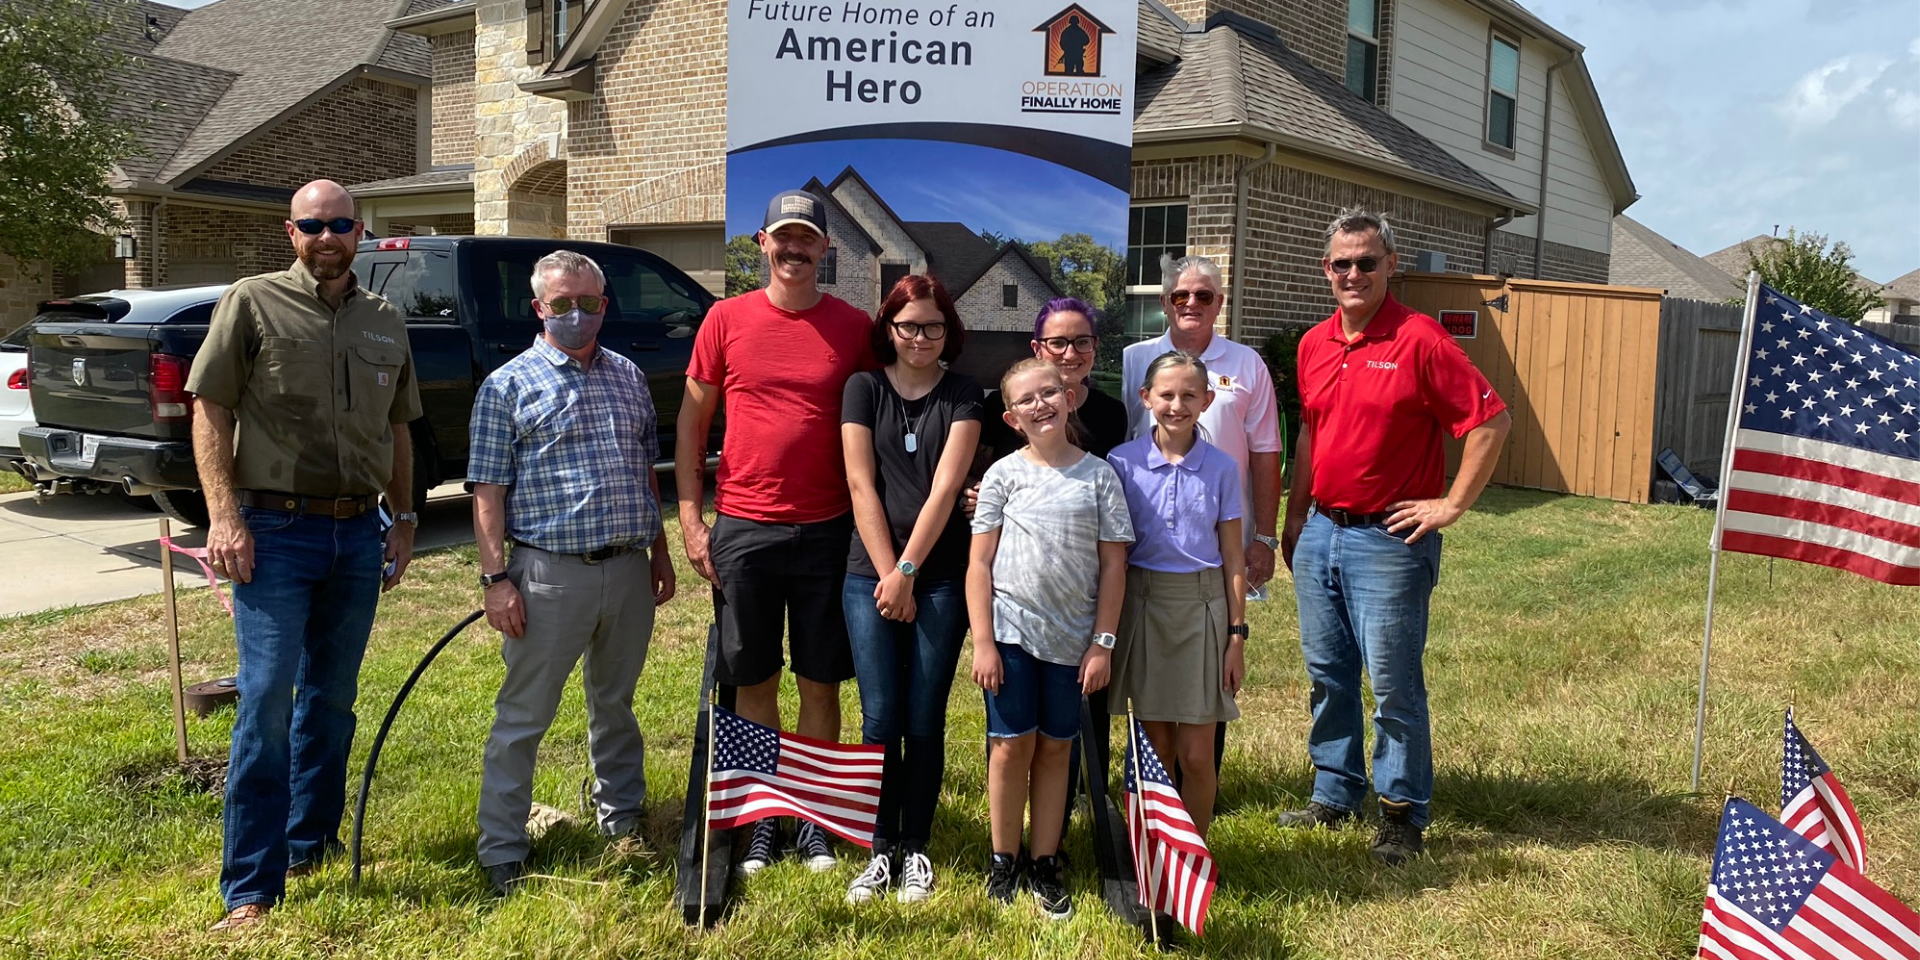 U.S. Marine Veteran and Family Celebrate New Mortgage-Free Home with Surprise and Special Groundbreaking Ceremony